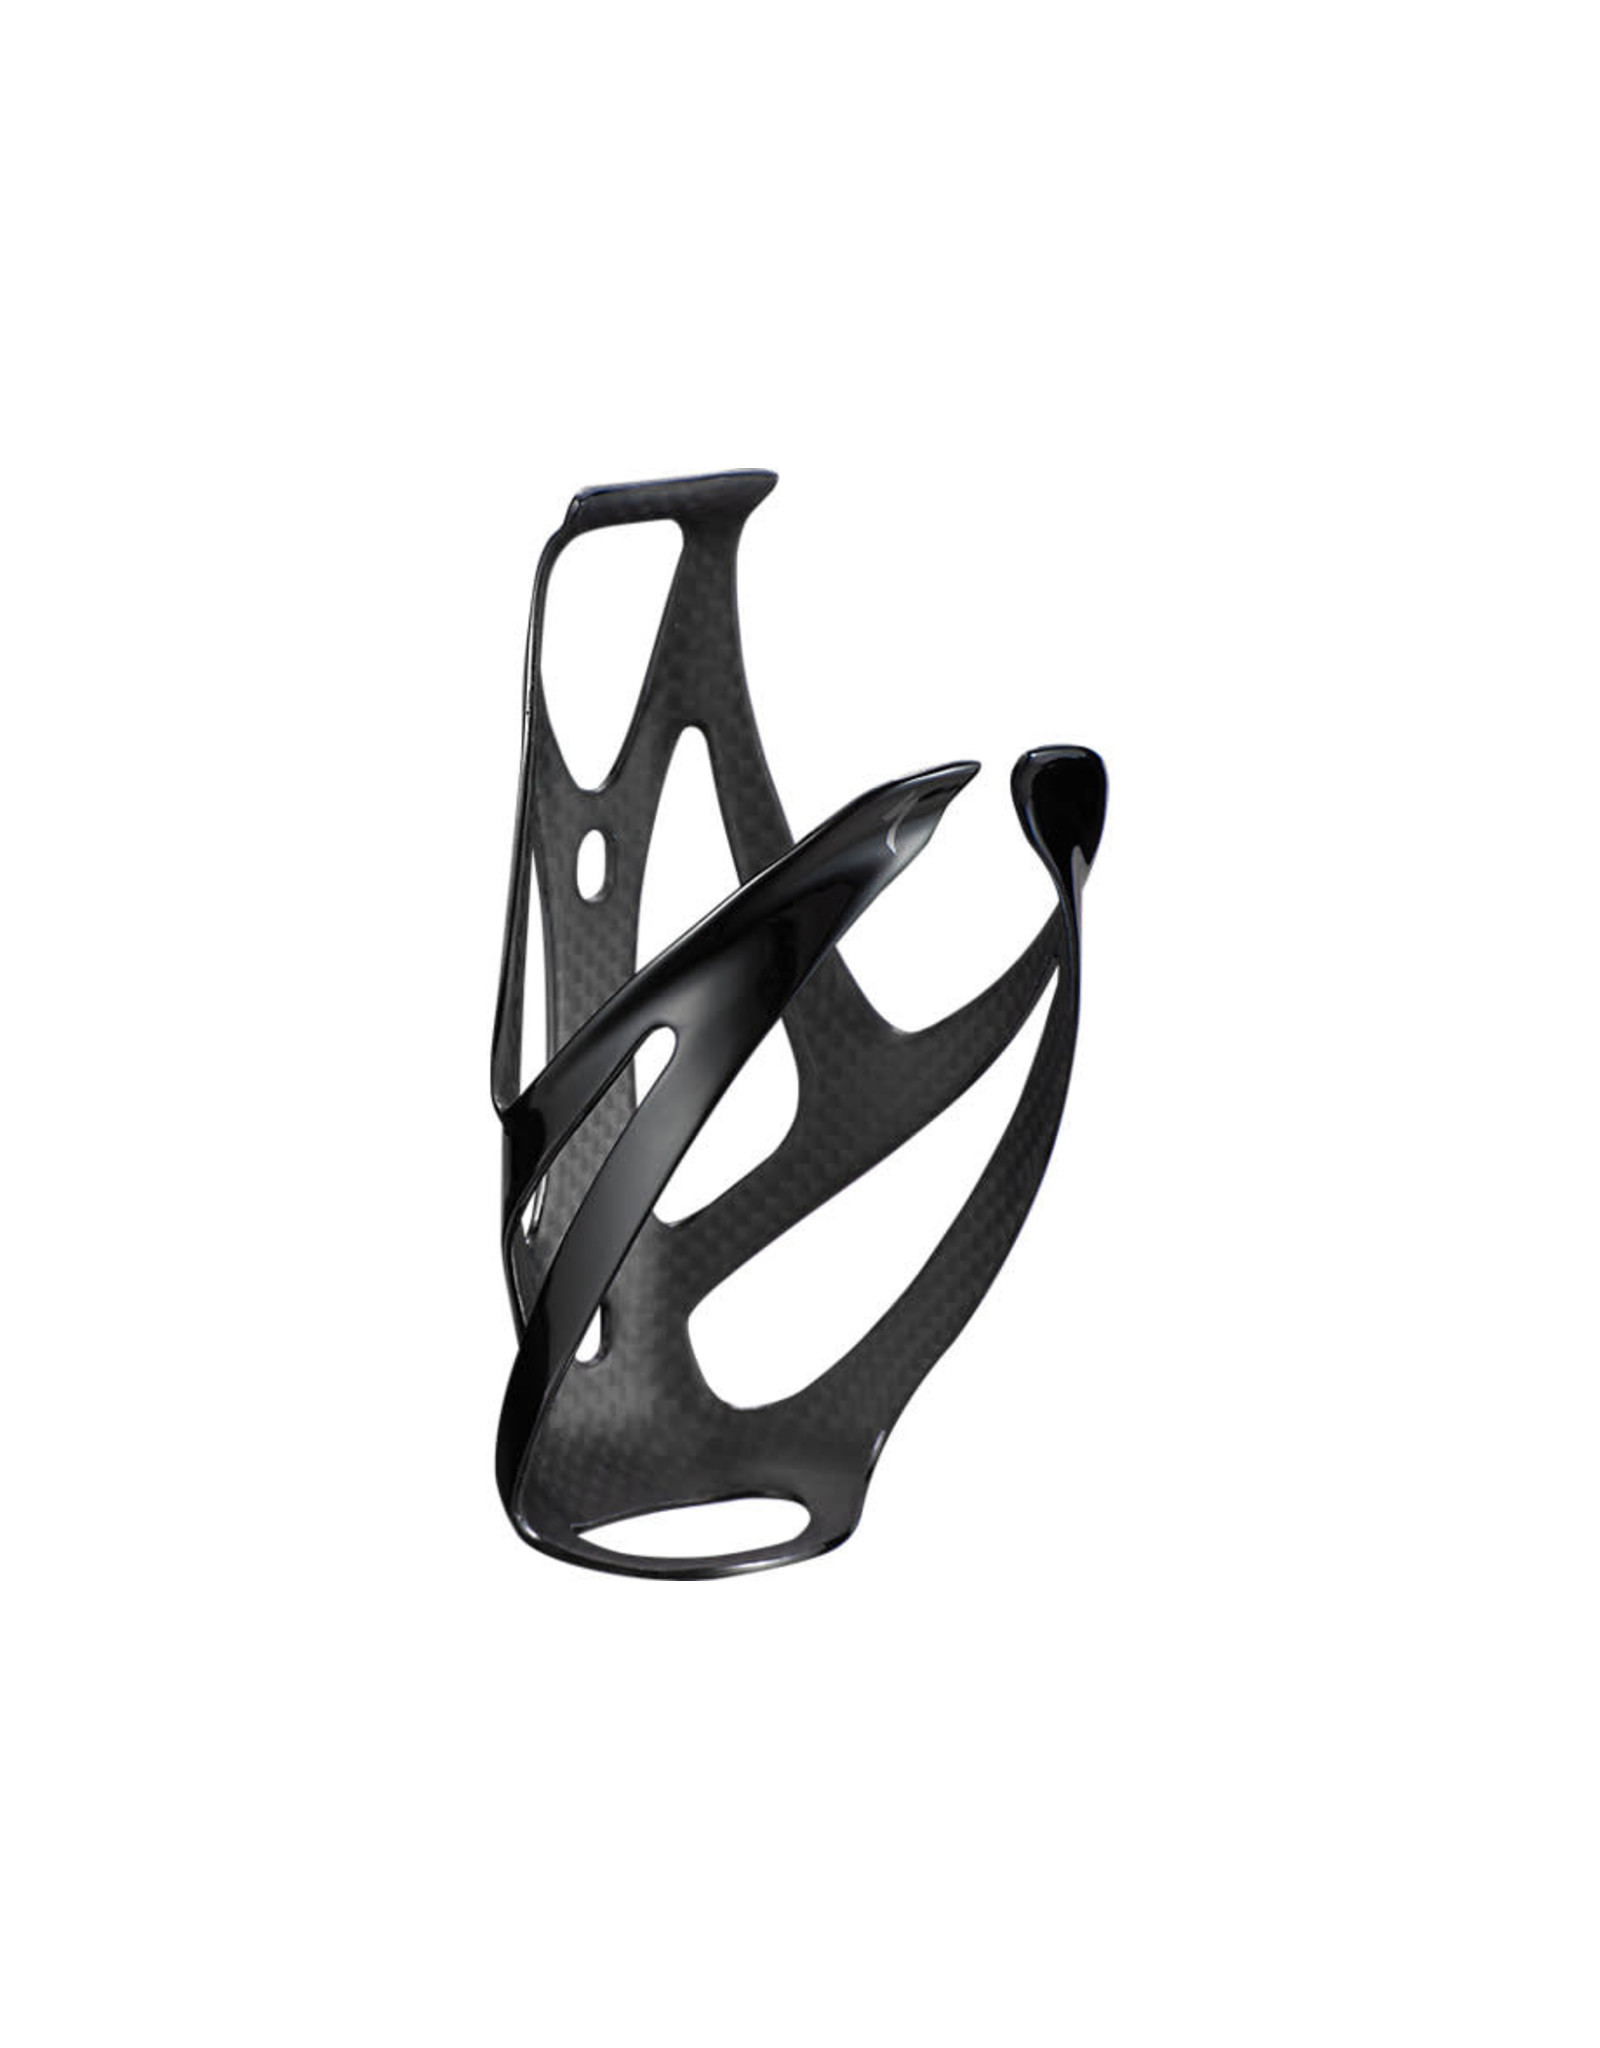 Specialized S-WORKS, RIB CAGE III CARBON CARB/GLOSS BLK